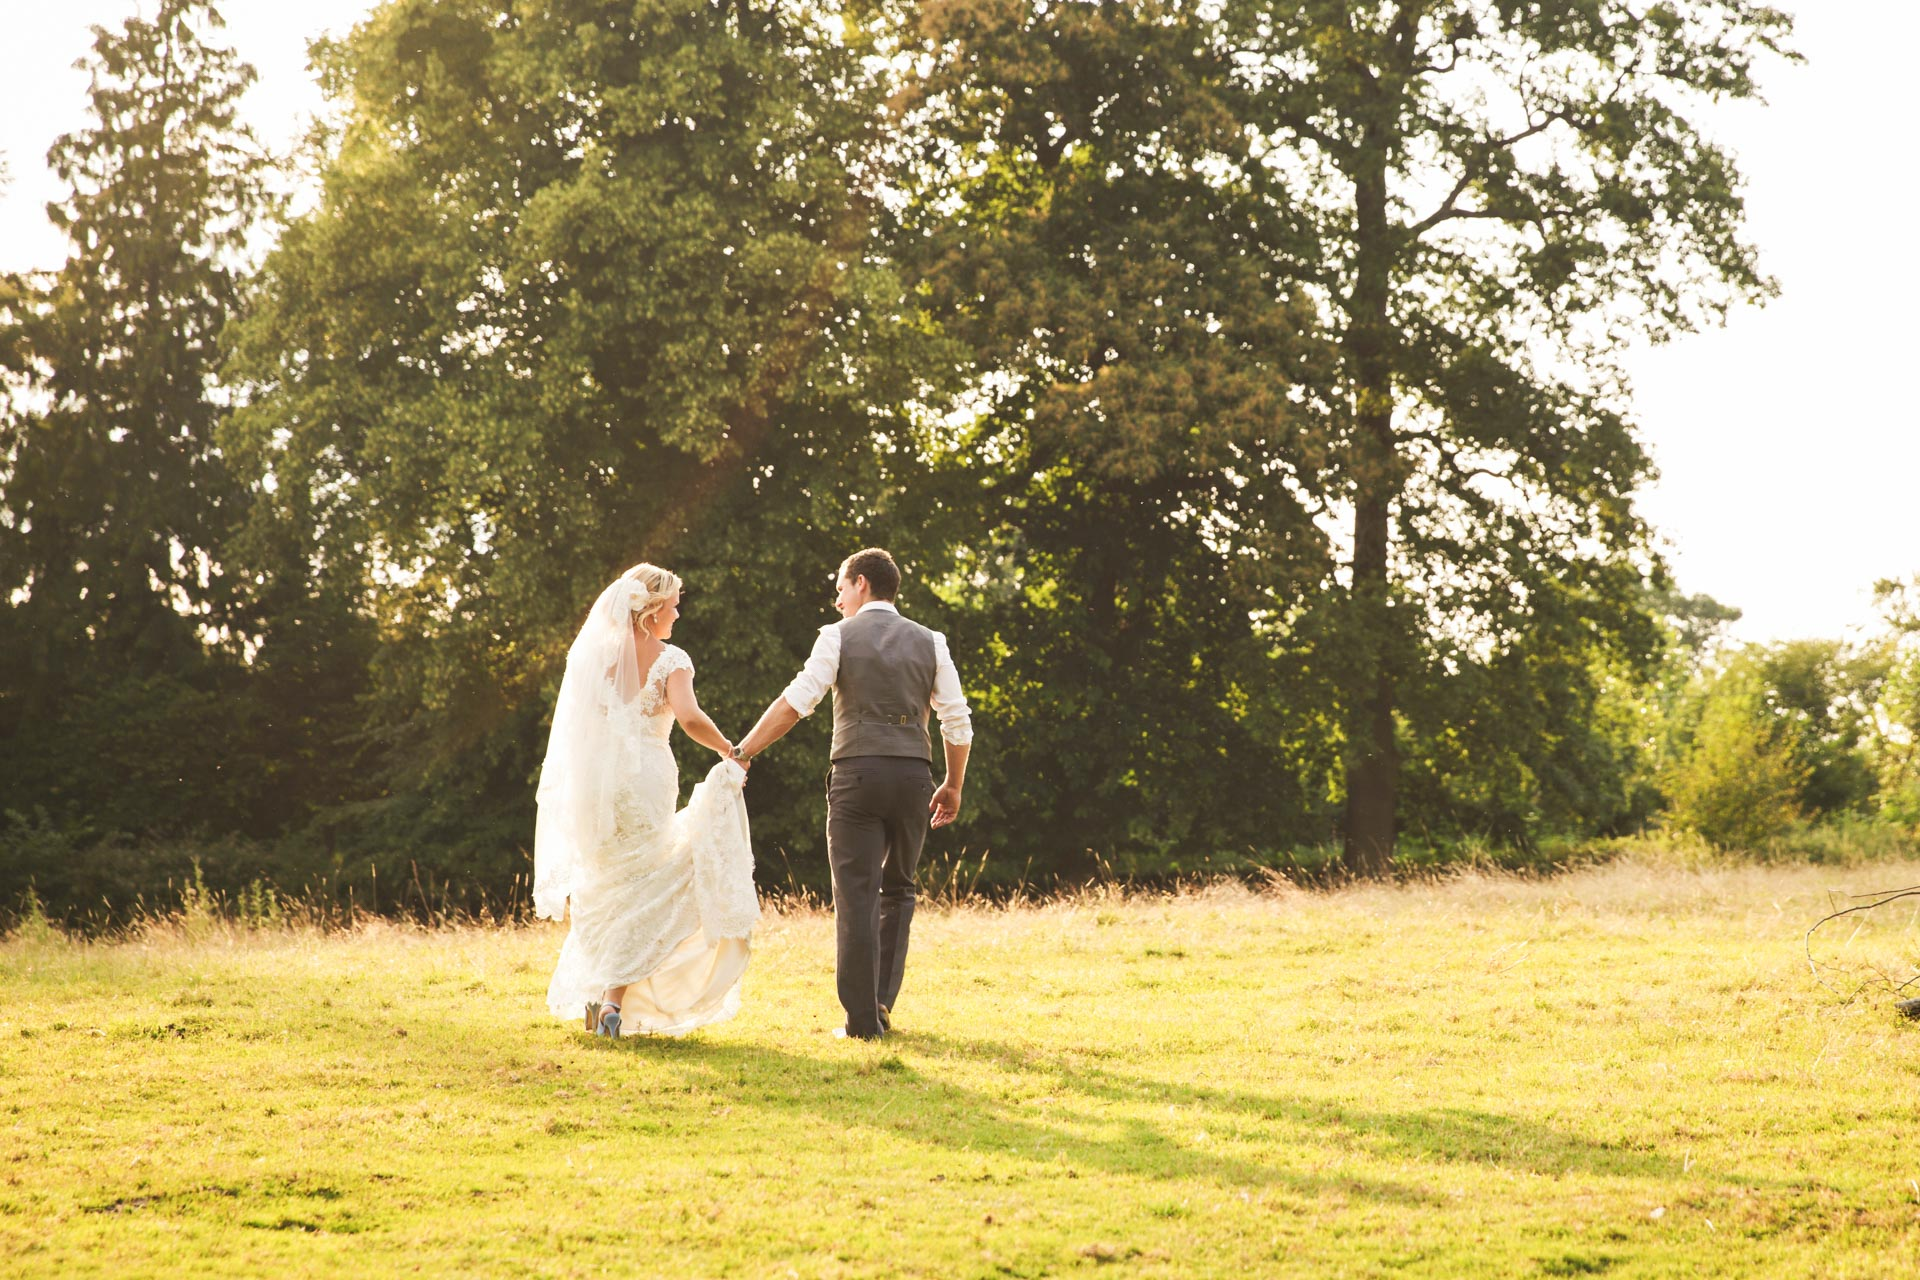 2017-WEDDING-portfolio-gemmawilliamsphotography_1161.jpg